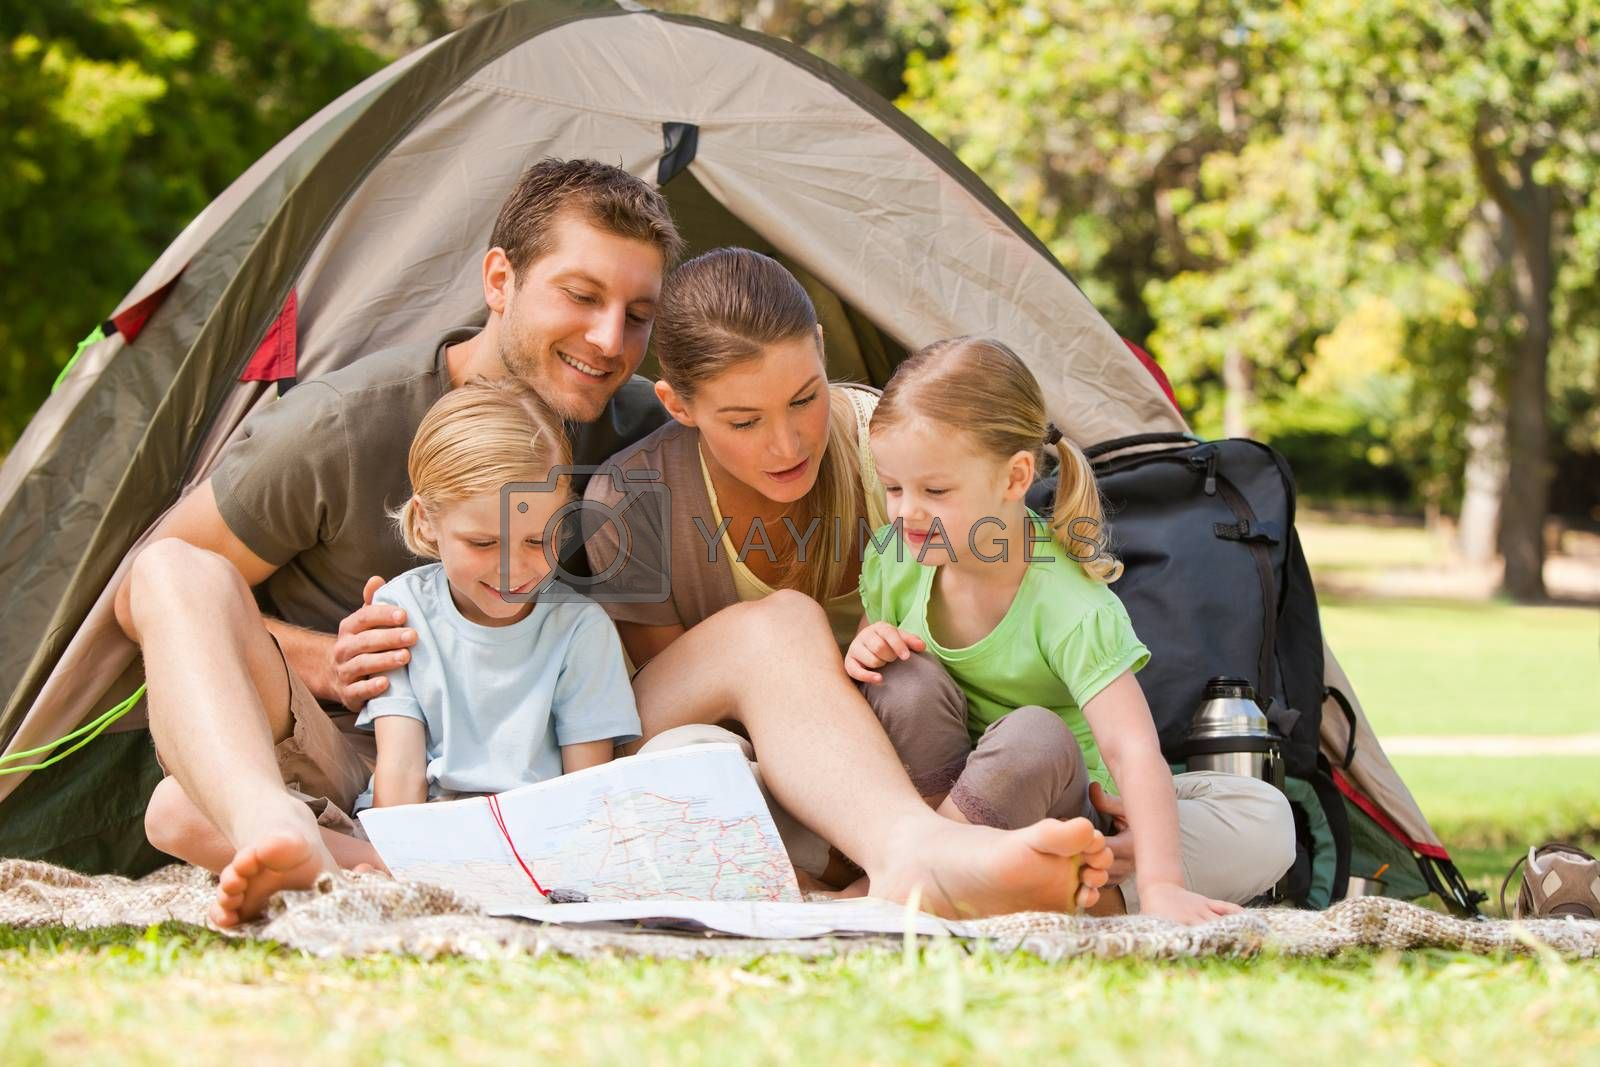 Family camping in the park during the summer